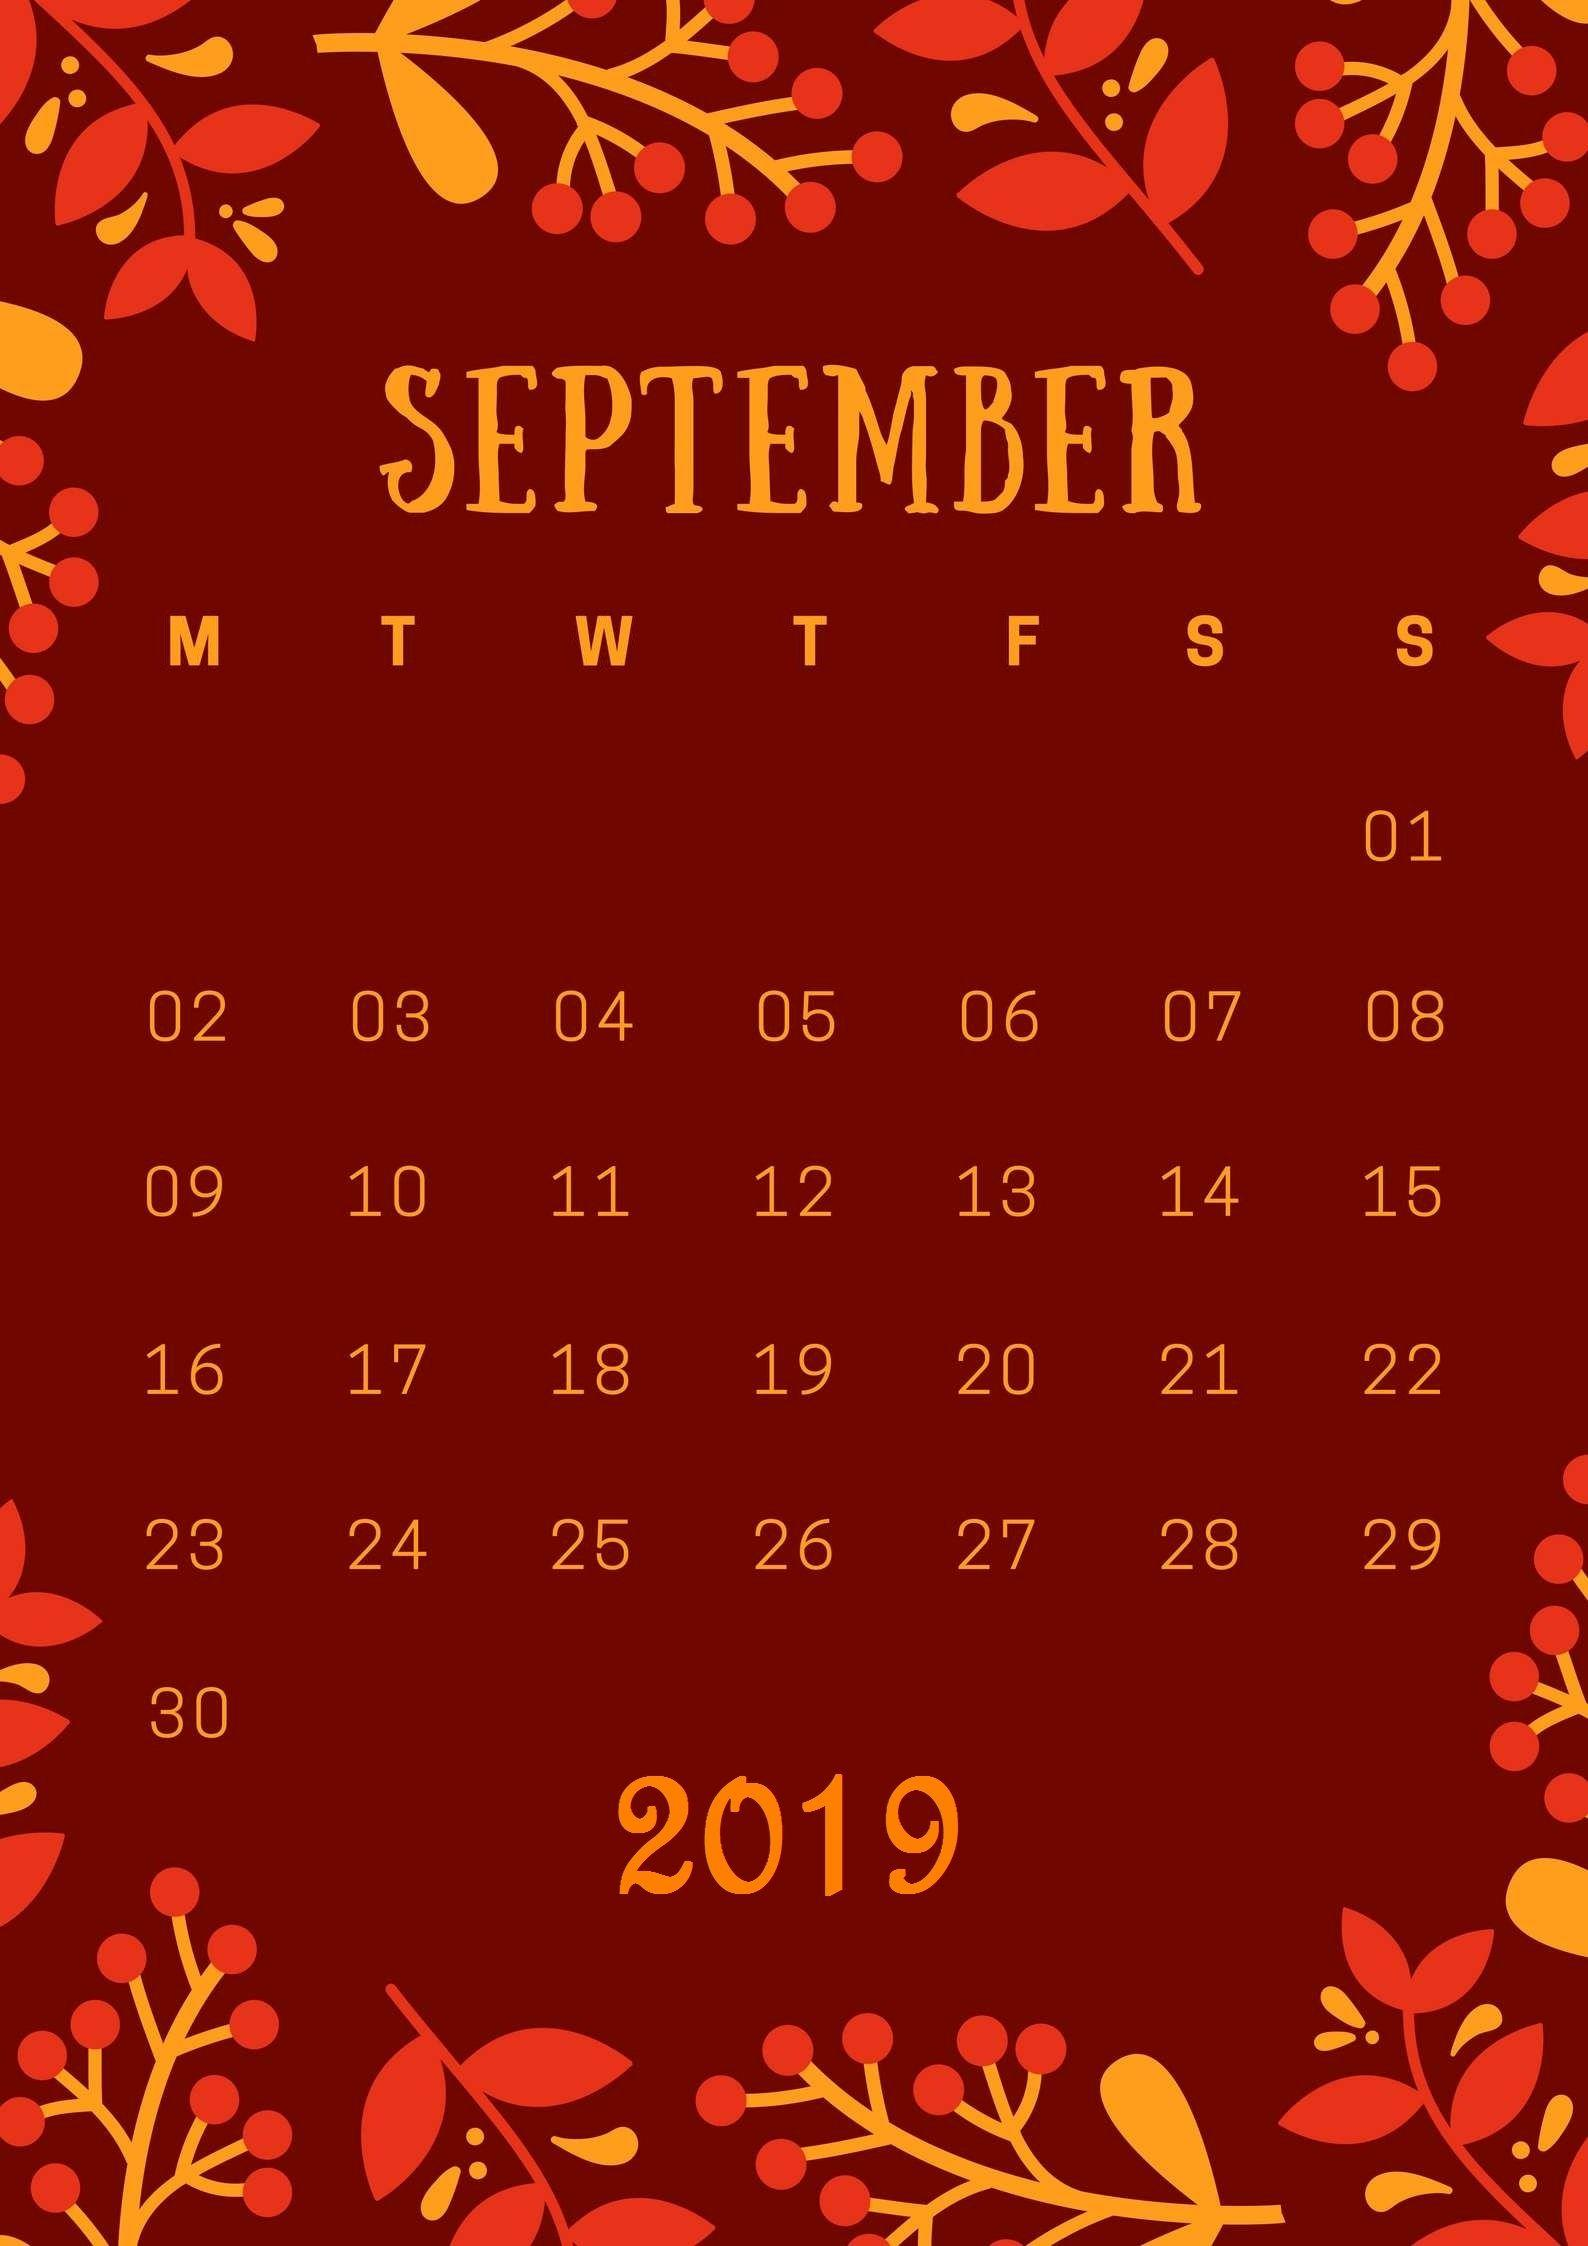 September 2019 Calendar Wallpapers - Wallpaper Cave